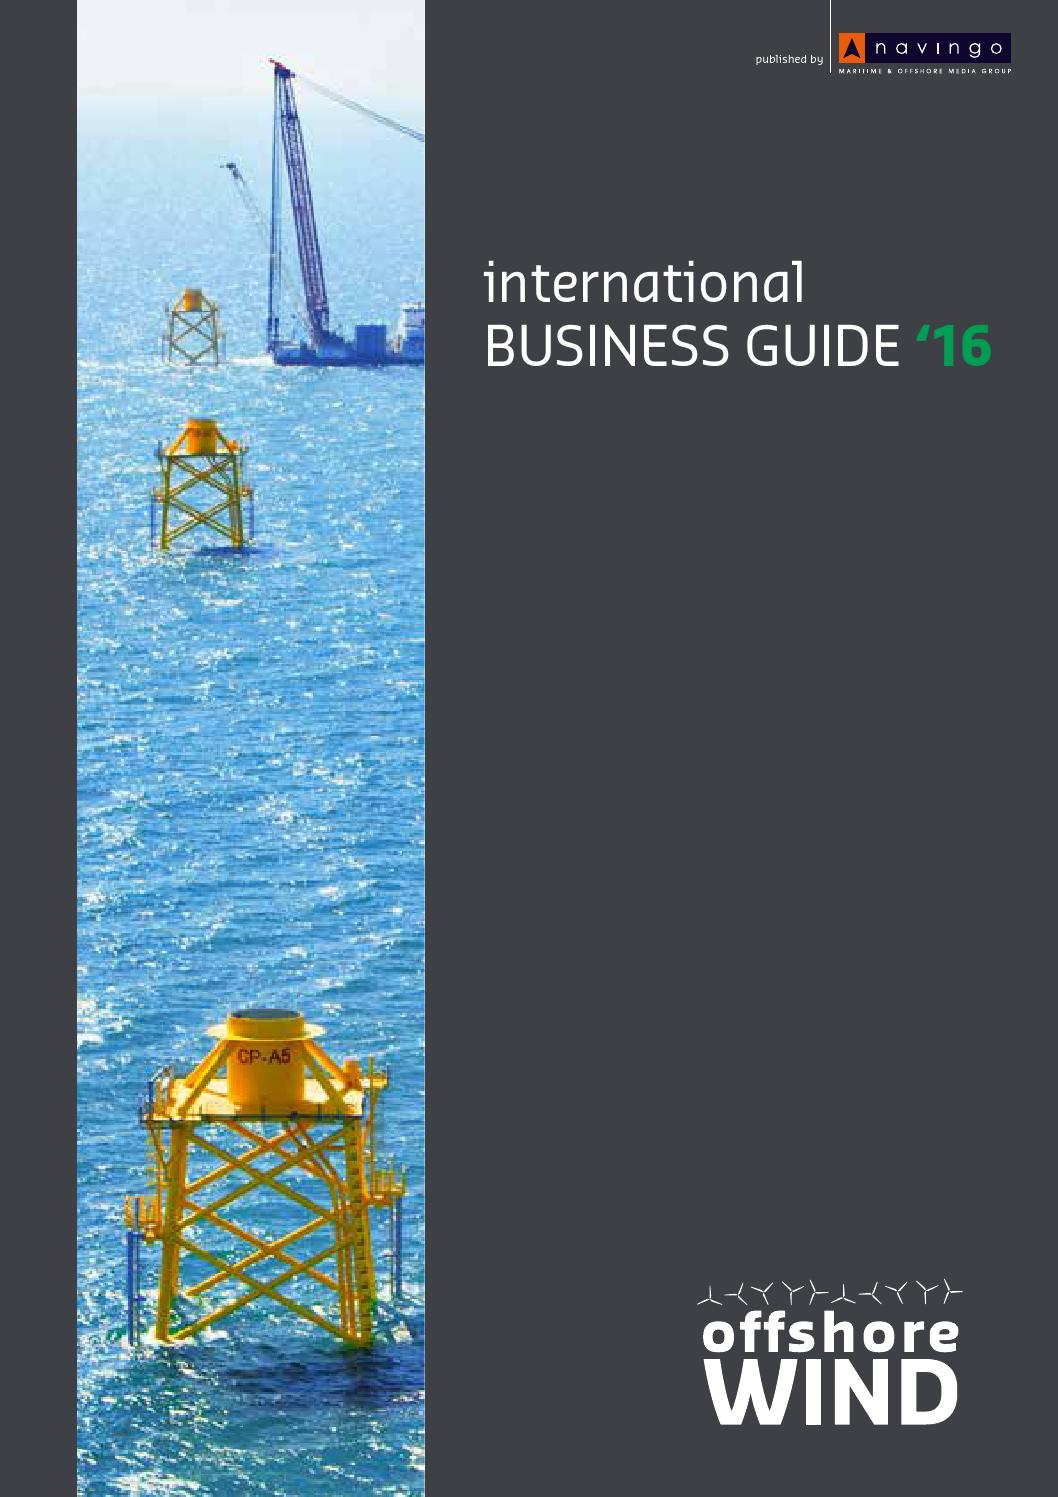 Location Nacelle Brest Offshore Wind International Business Guide 2016 By Navingo Bv Issuu